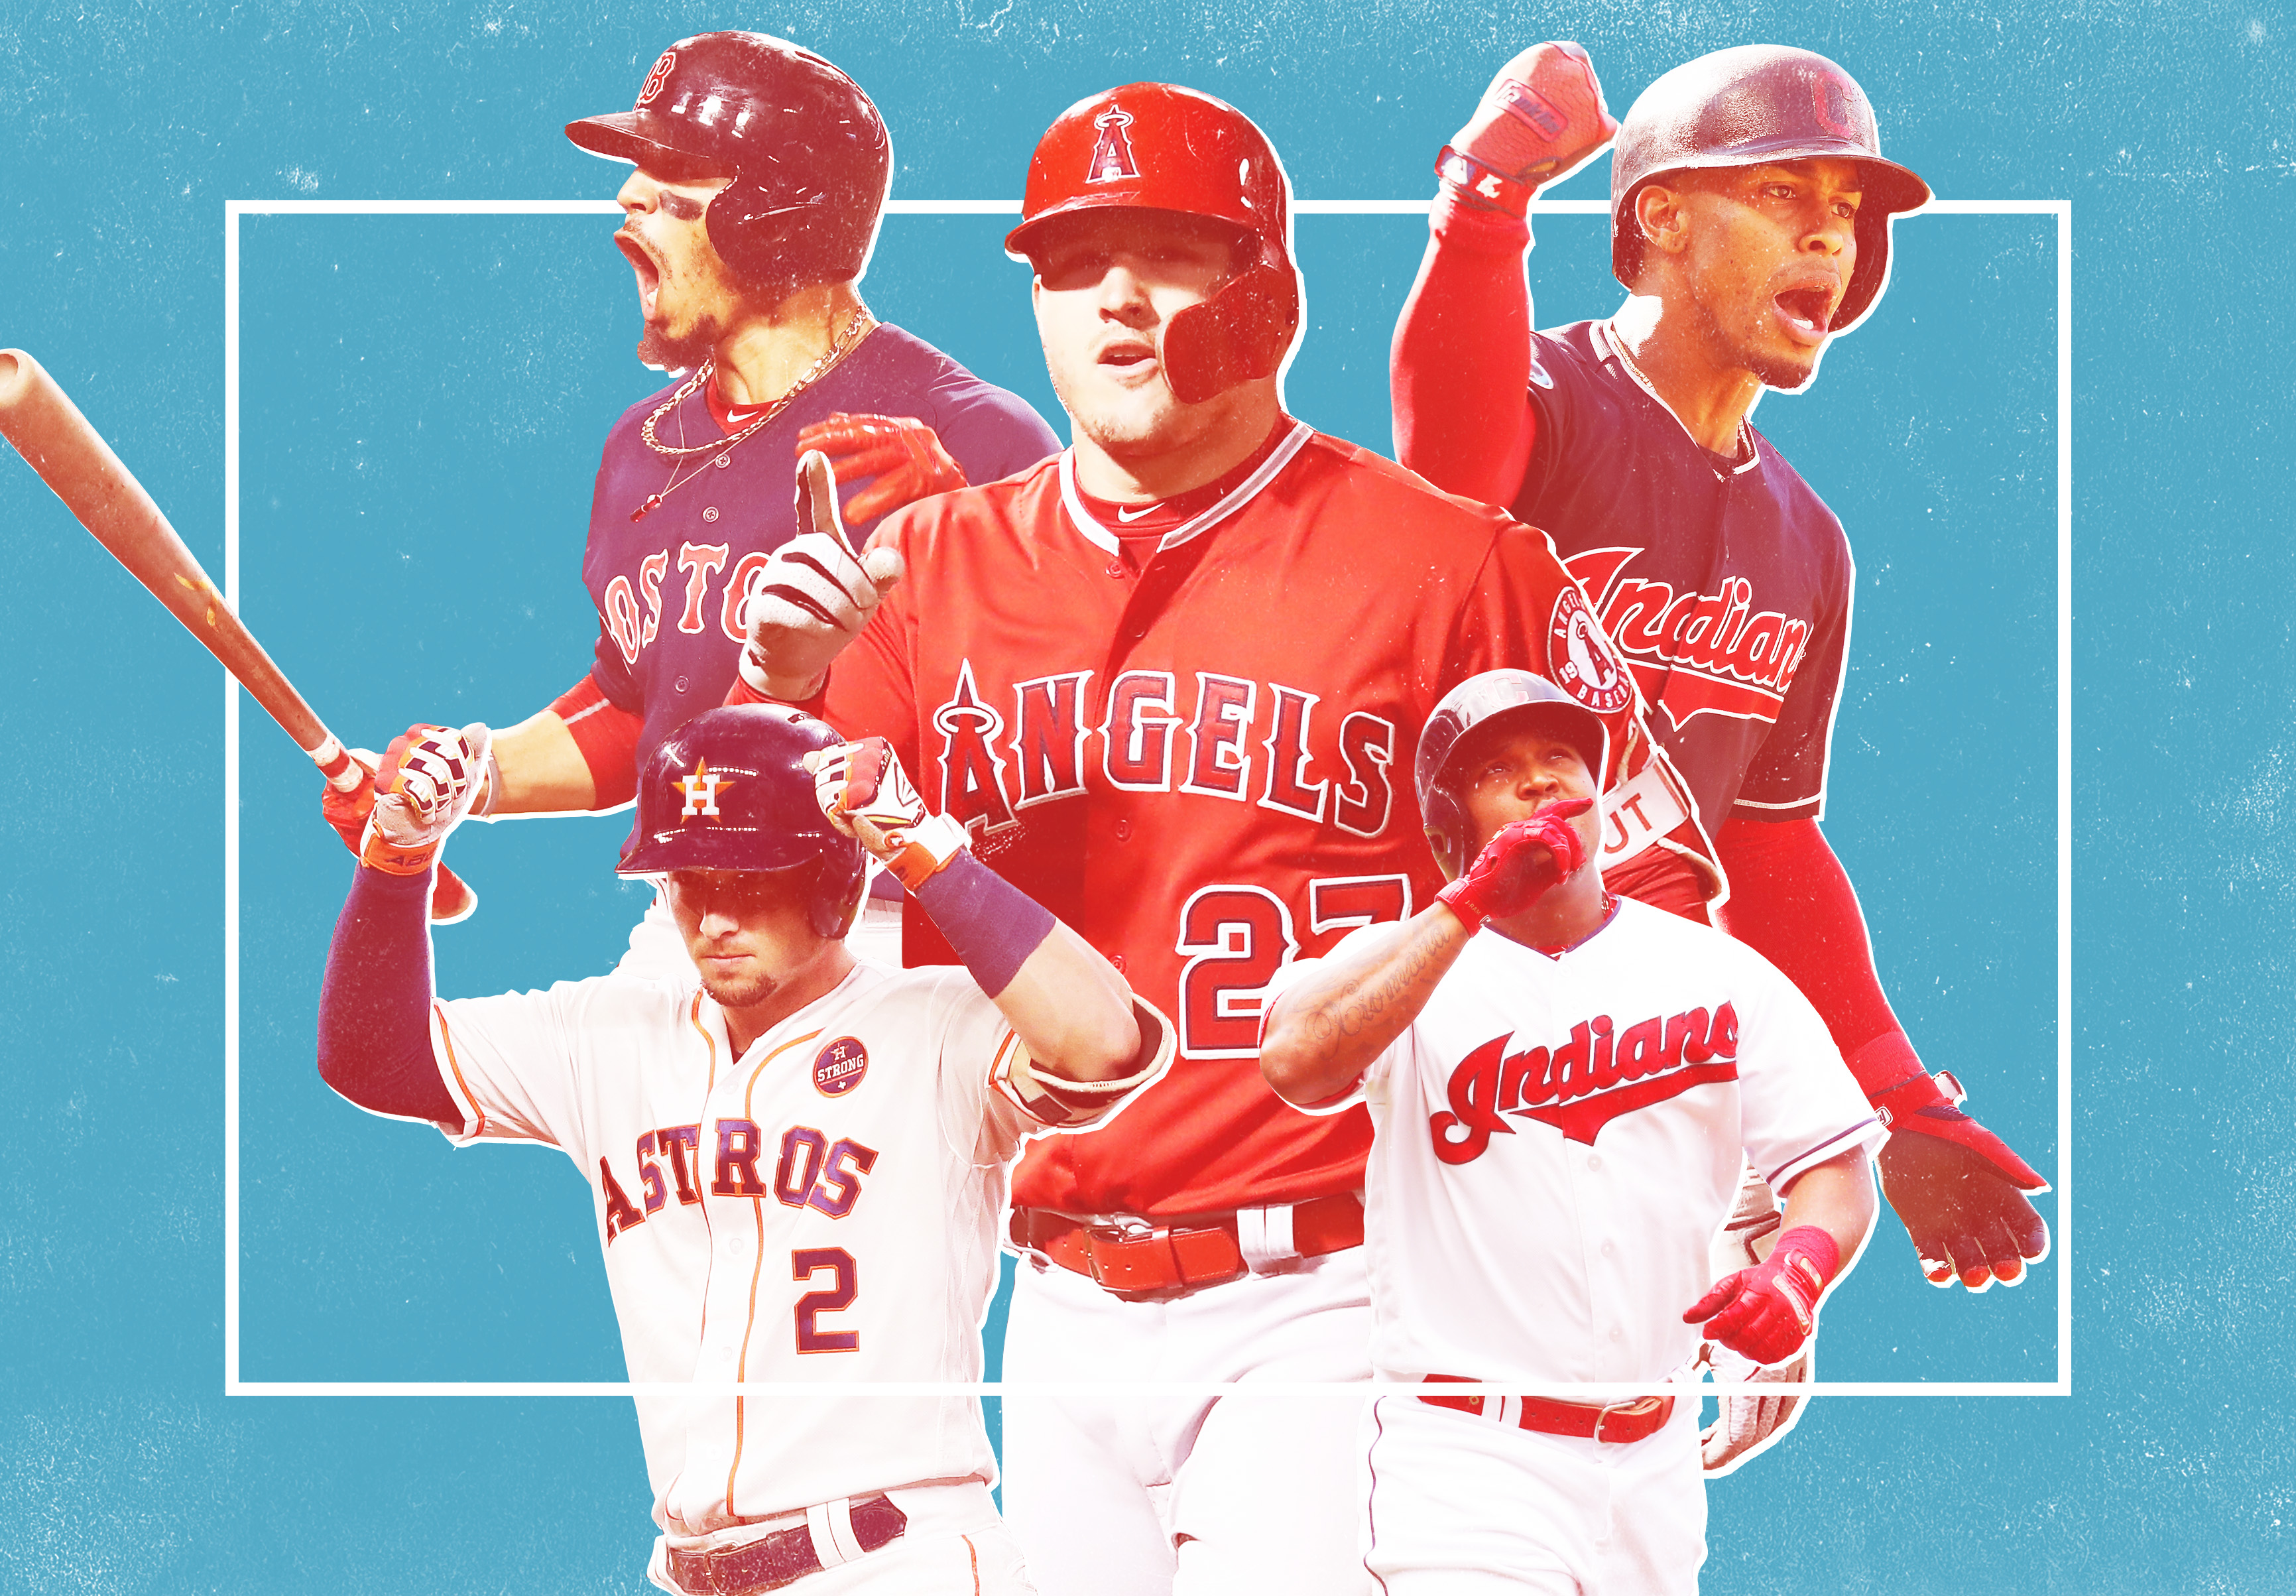 00a894af8 2019 Fantasy Baseball Rankings  Top 300 Rotisserie League Rankings with  Projections. Mike Trout and Mookie Betts ...